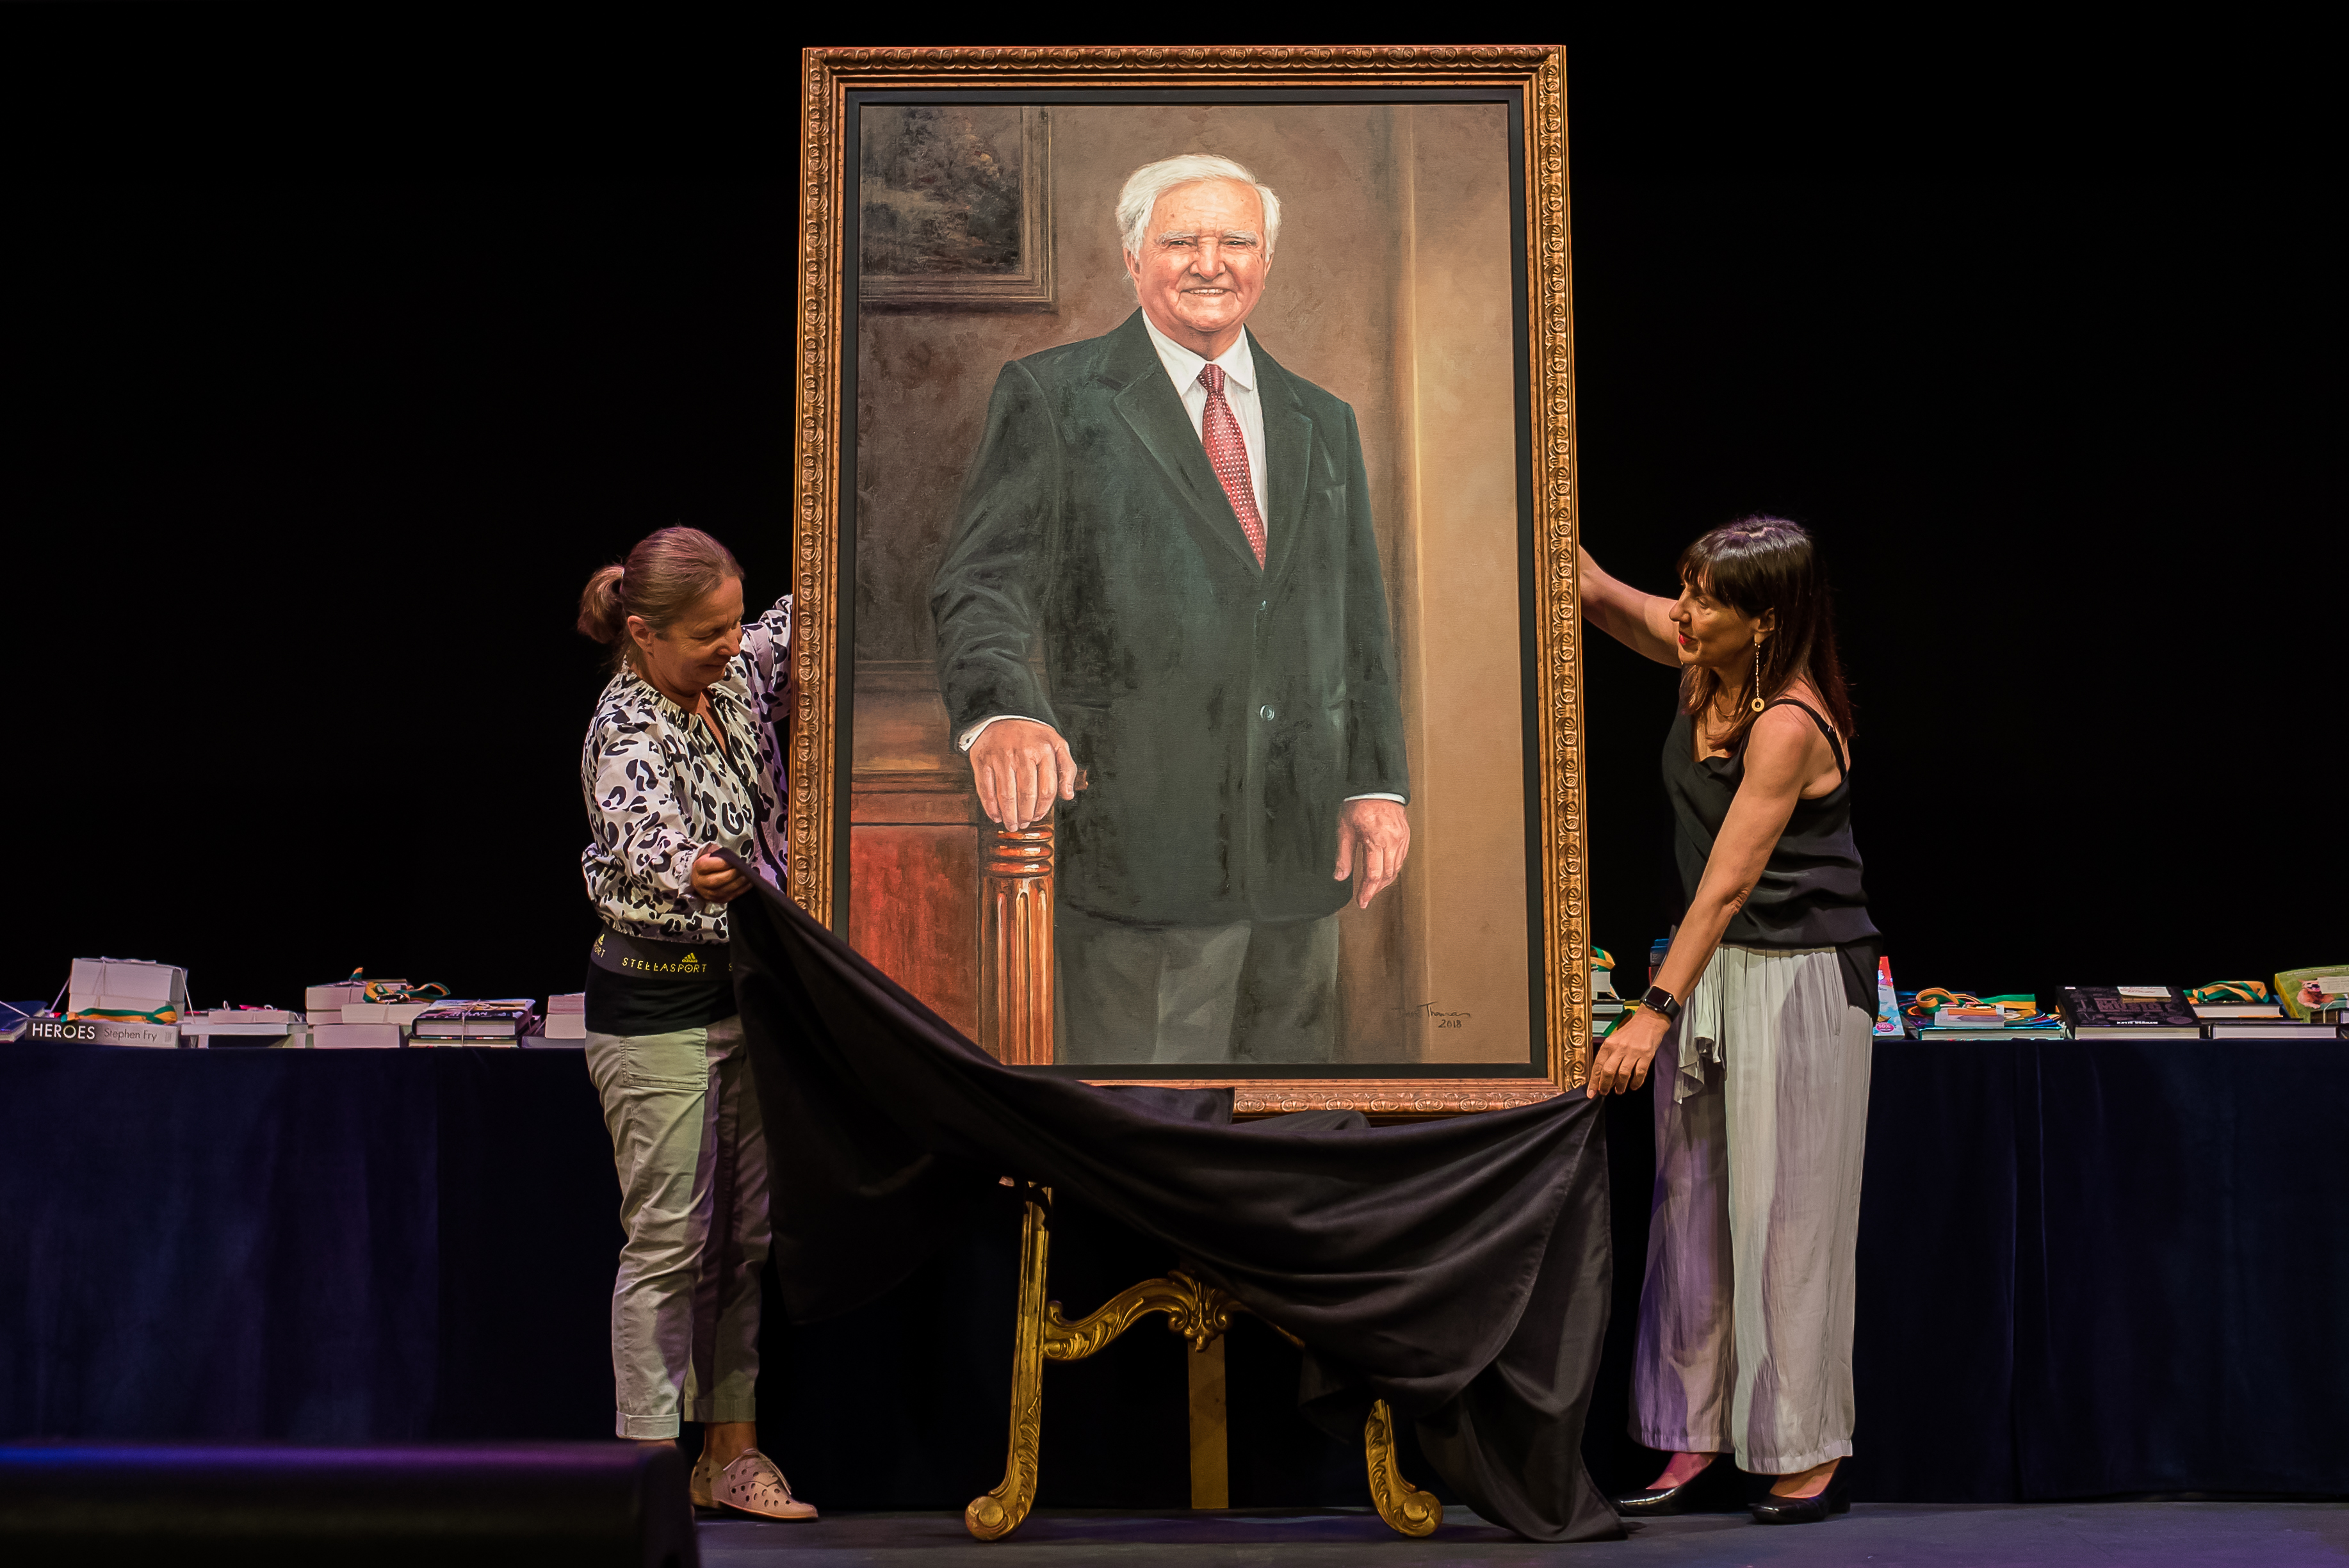 A portrait of IGS founder Reg St Leon OAM is unveiled